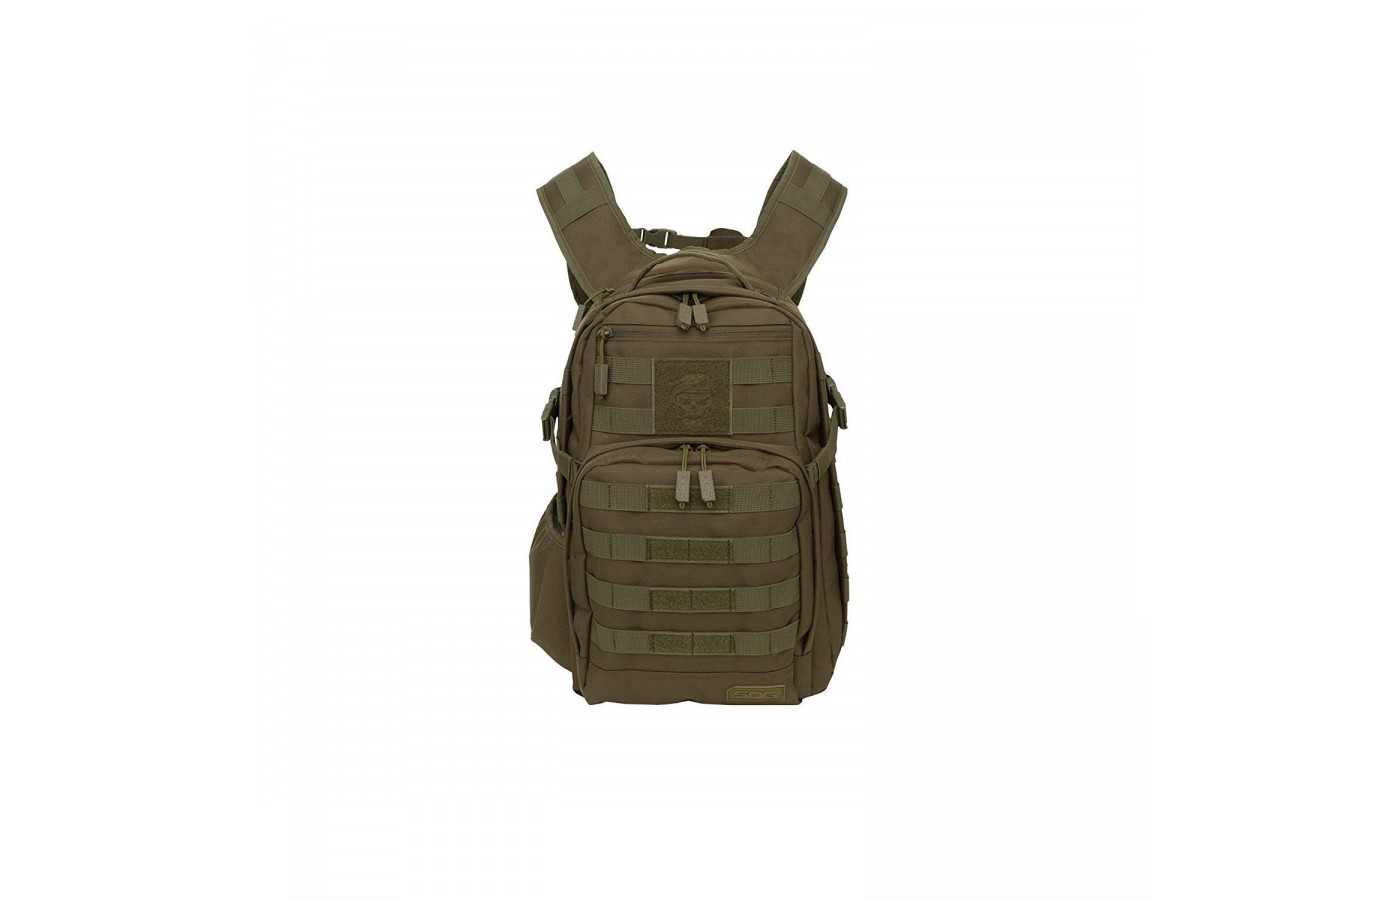 The Sog Ninja Daypack offers numerous external pockets for more organization.